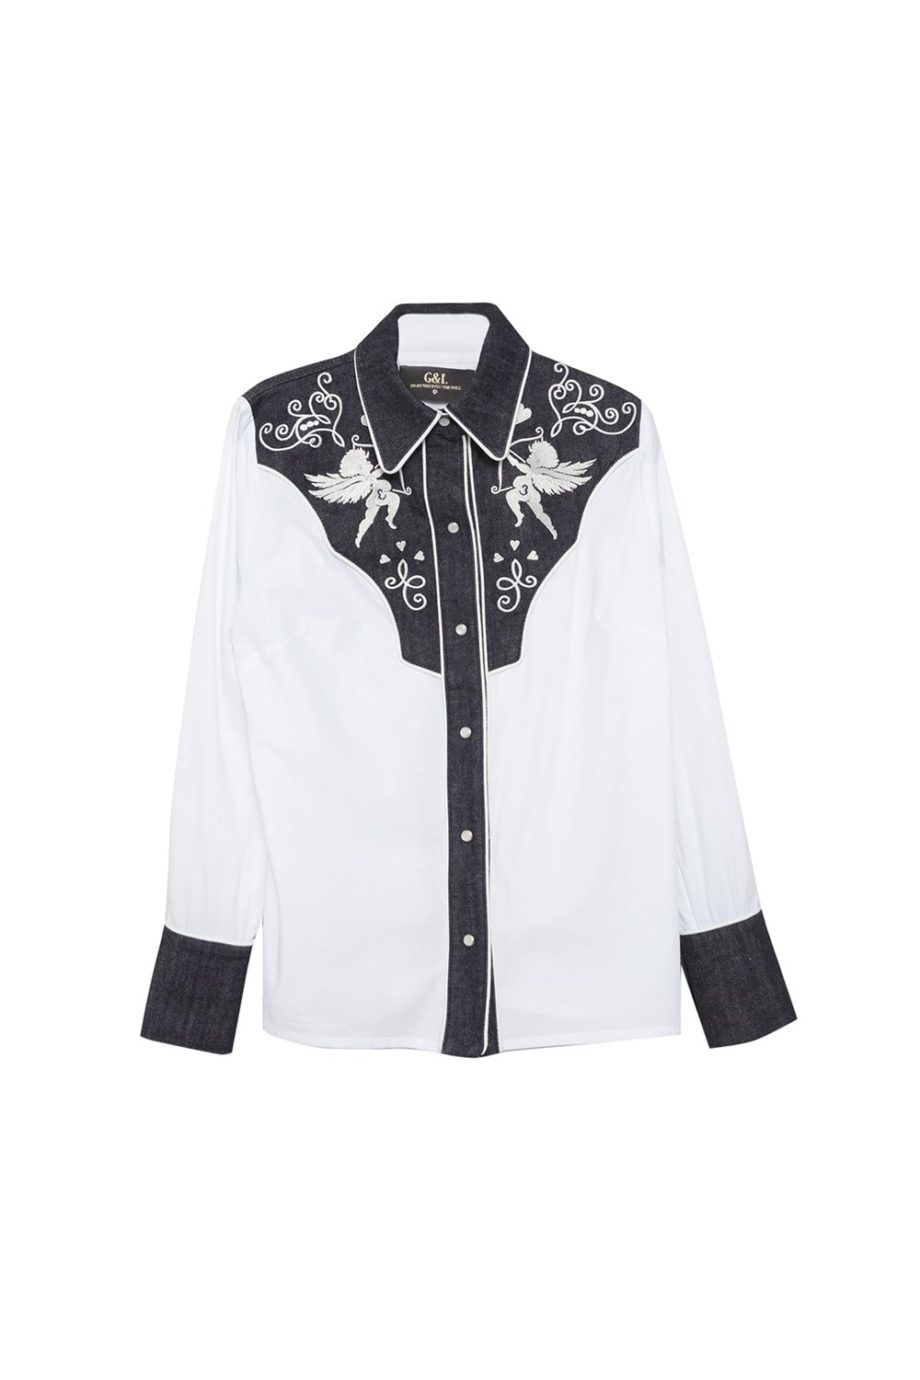 POPELIN JEAN SHIRT